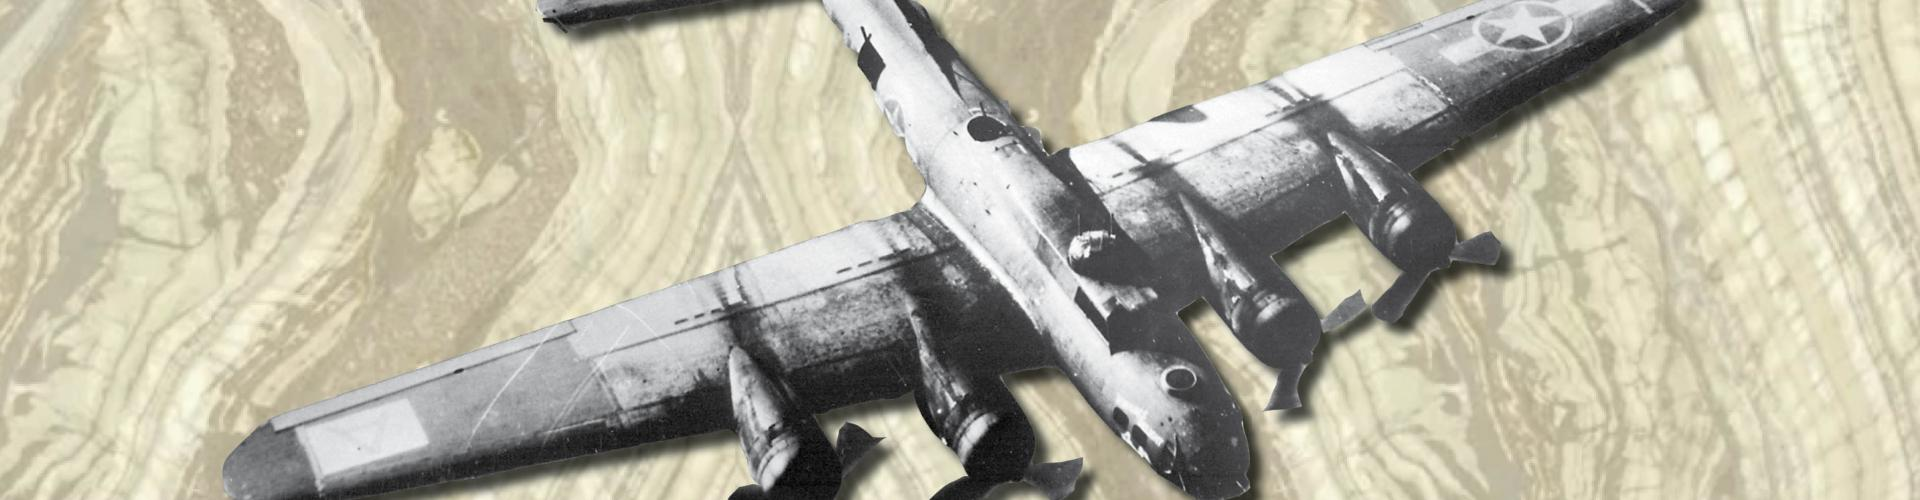 black and white ww2 plane atop marble background